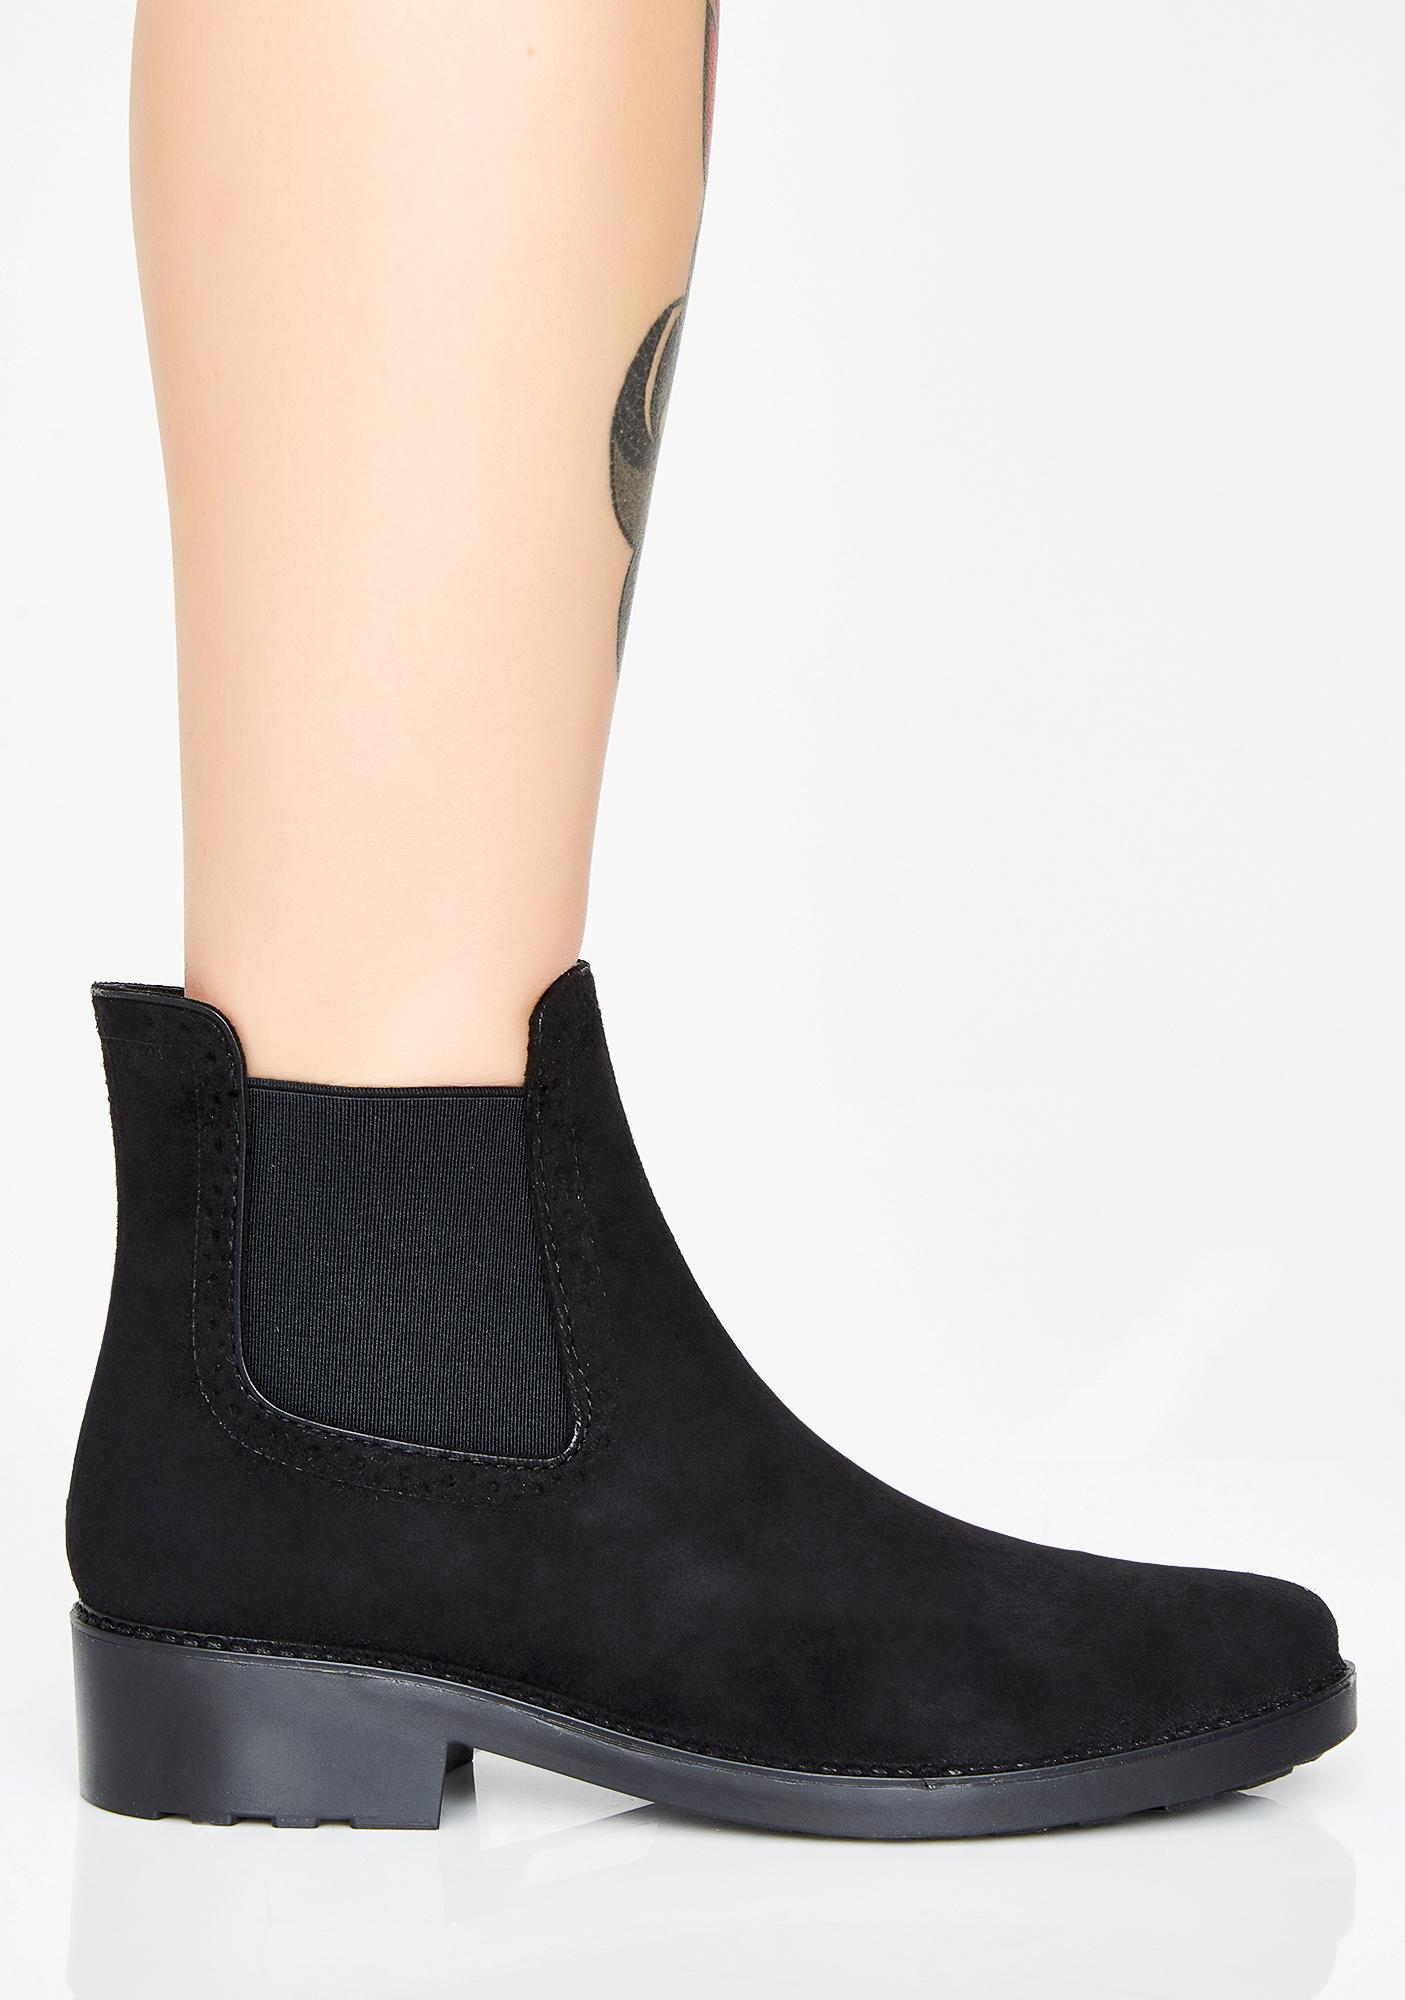 Can't Quit You Chelsea Boots